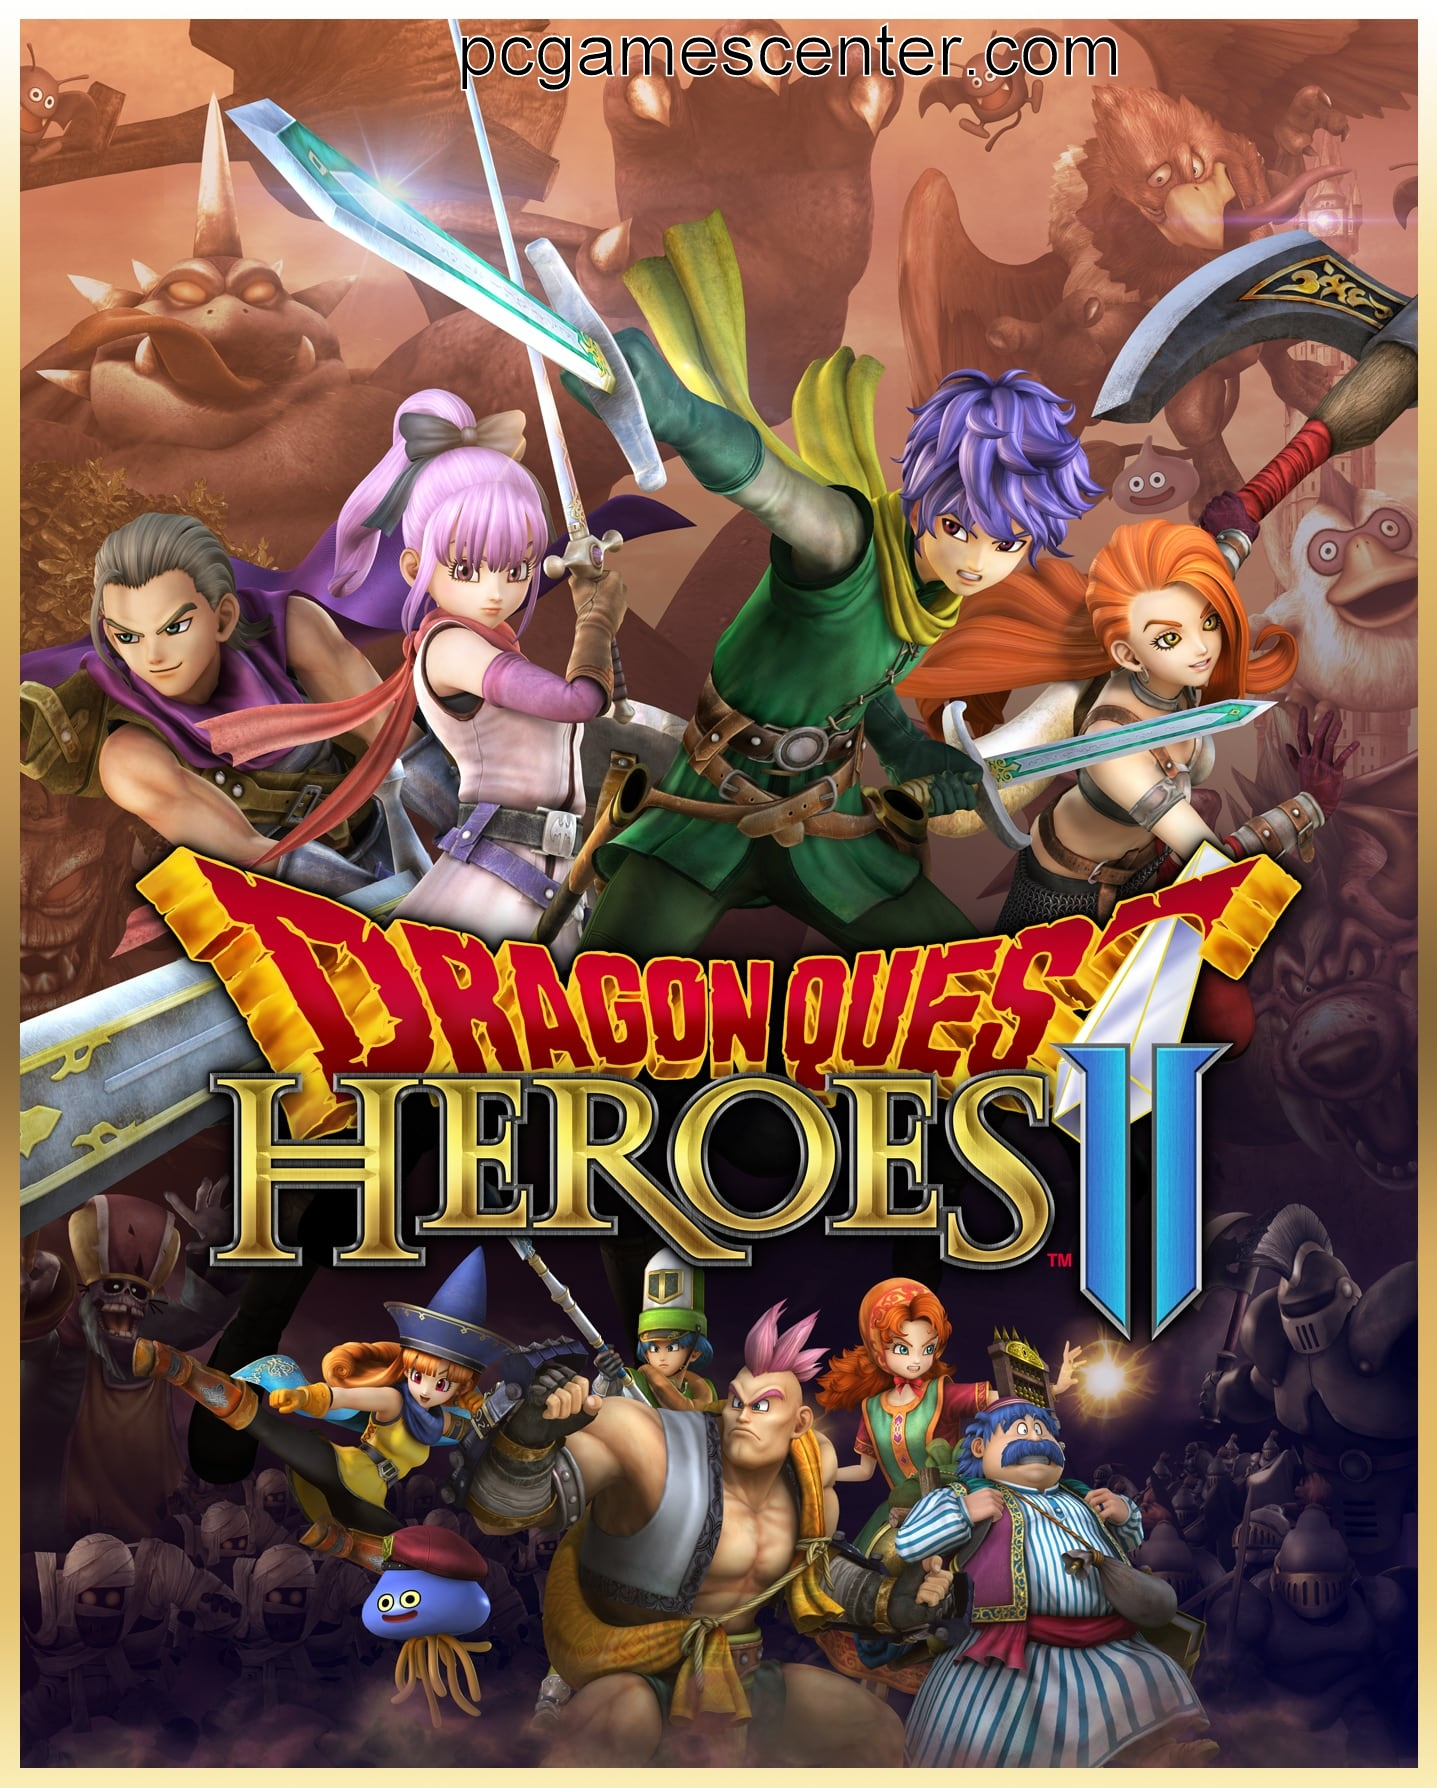 Dragon Quest Heroes II Pc Game Free Download